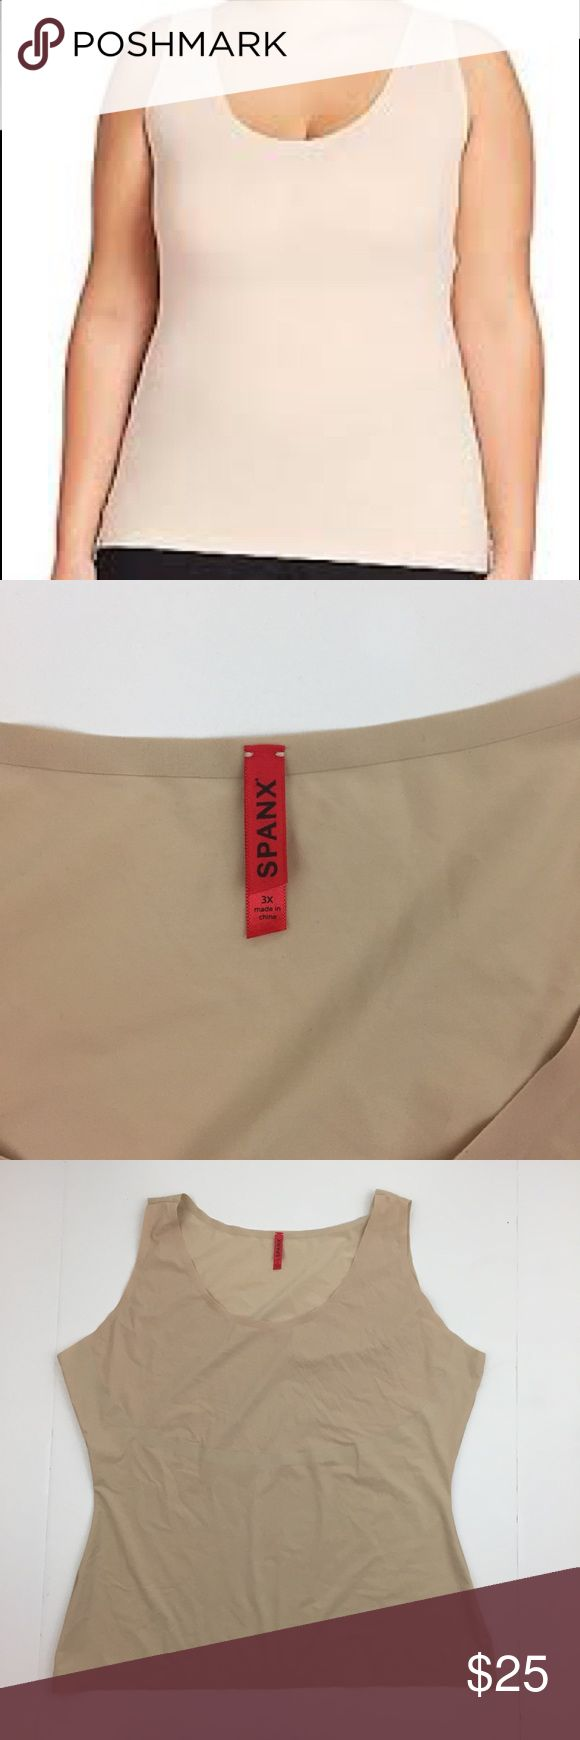 Spanx Thinstincts Tank/Camisole Nude 3X NEW Spanx 'Thinstincts' camisole in nude with scoop neck and light control fabric. Size 3X, nude, new without tag. Inside label marked to deter bogus store returns. SPANX Intimates & Sleepwear Shapewear